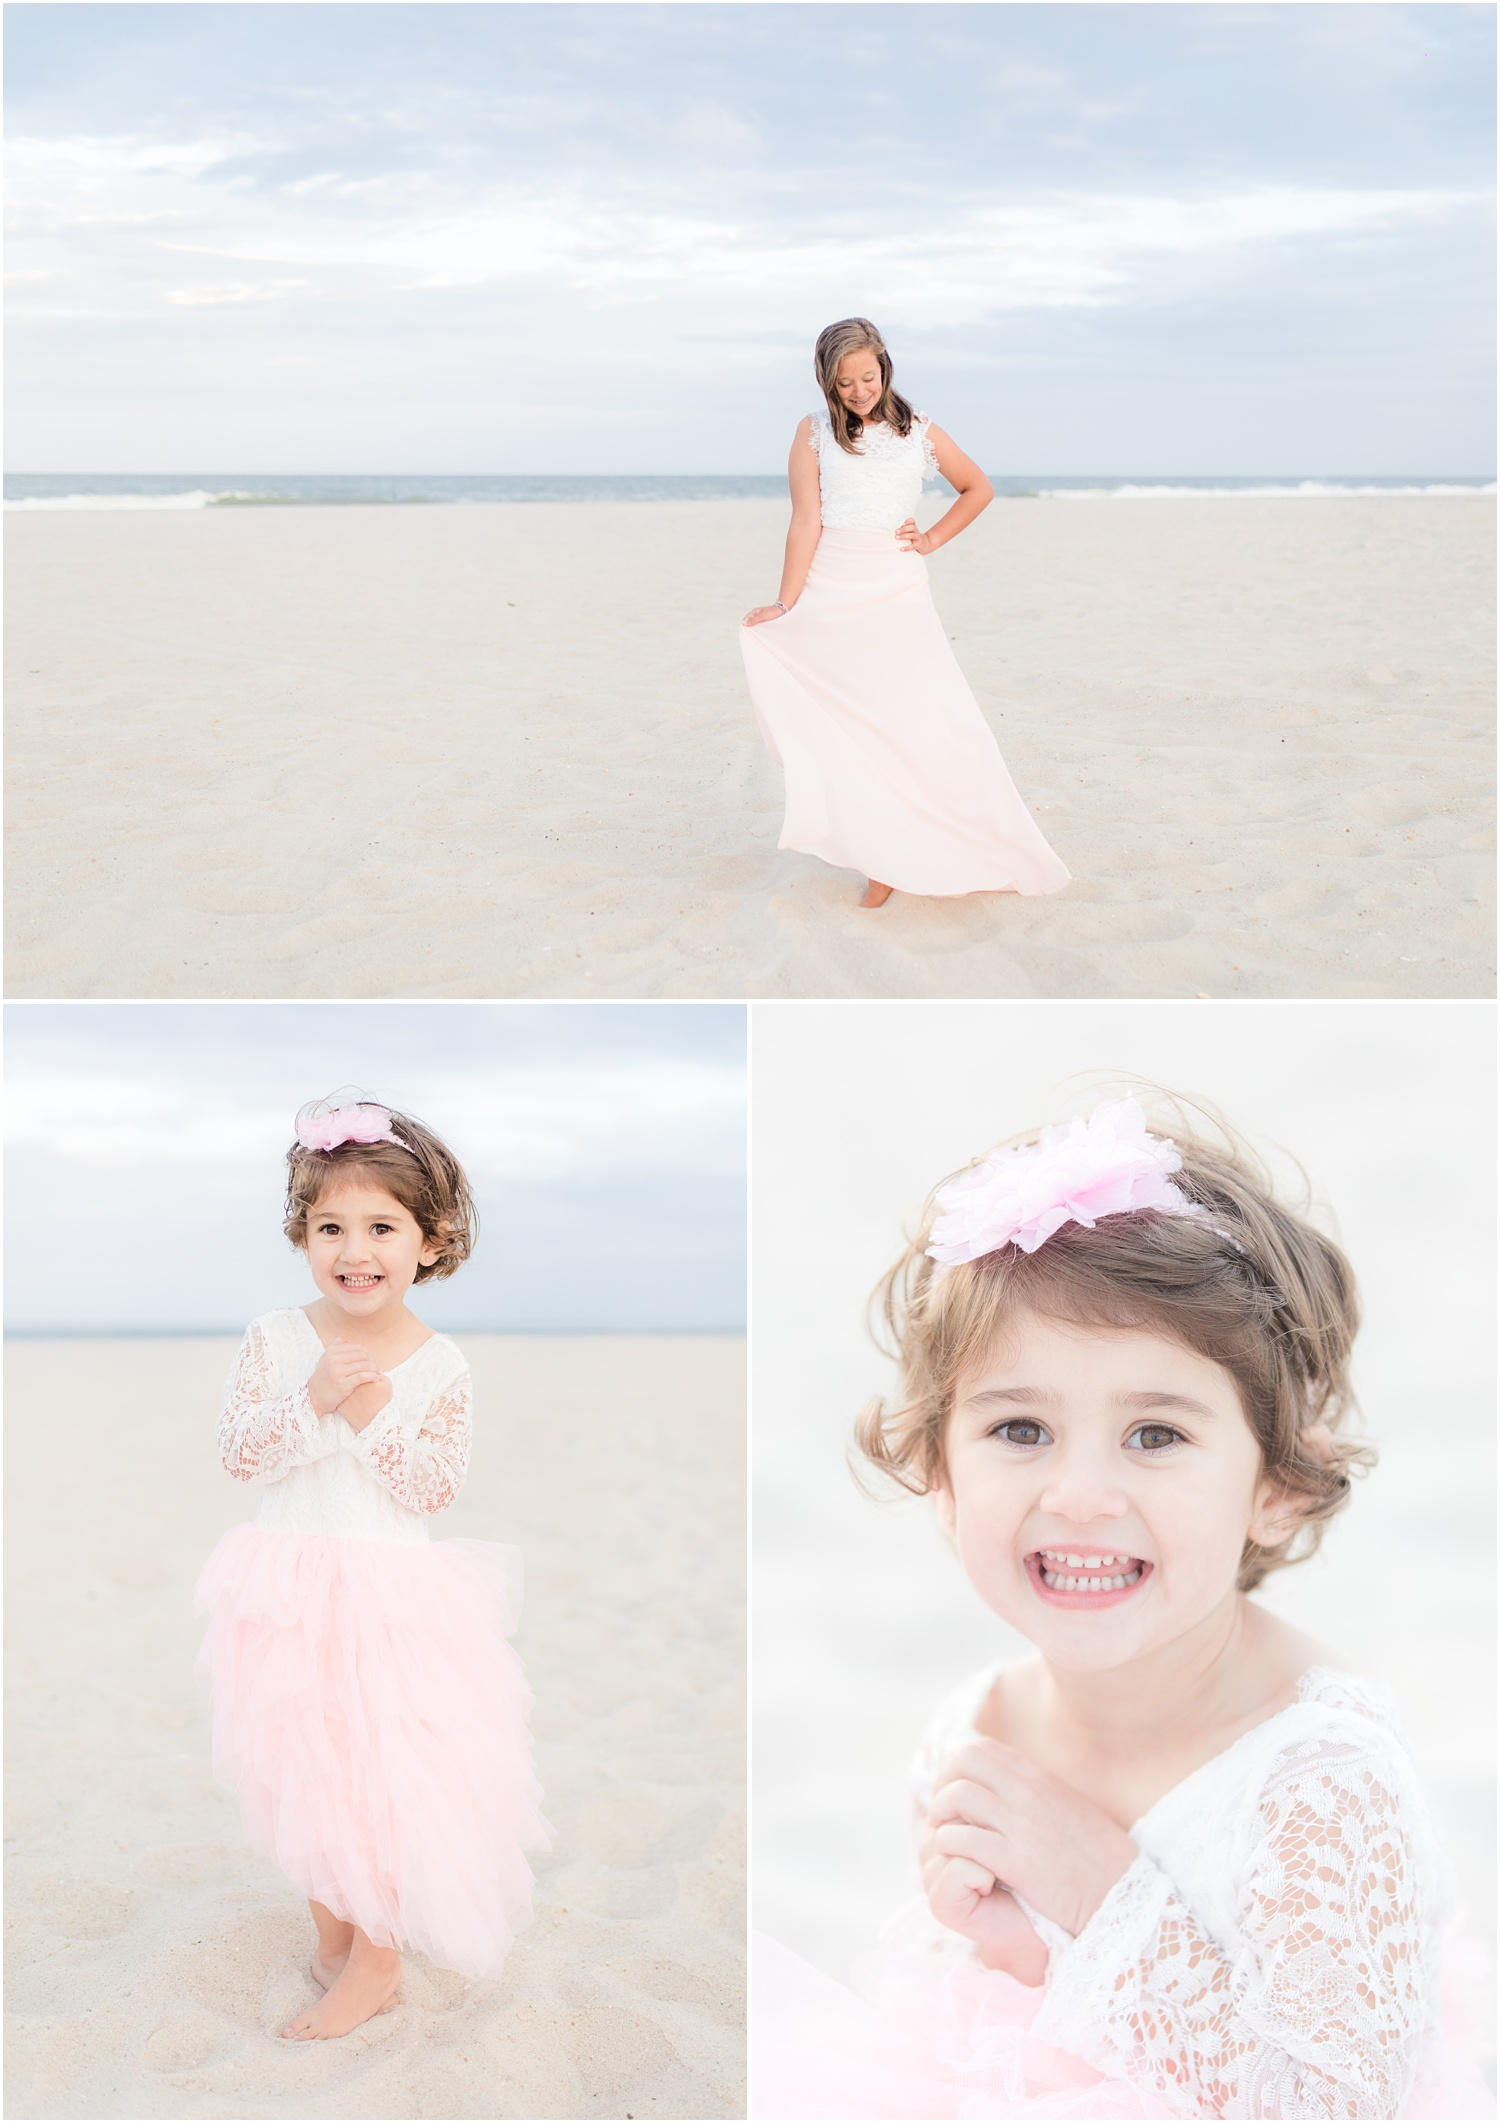 Girly beach photos with tulle dresses.